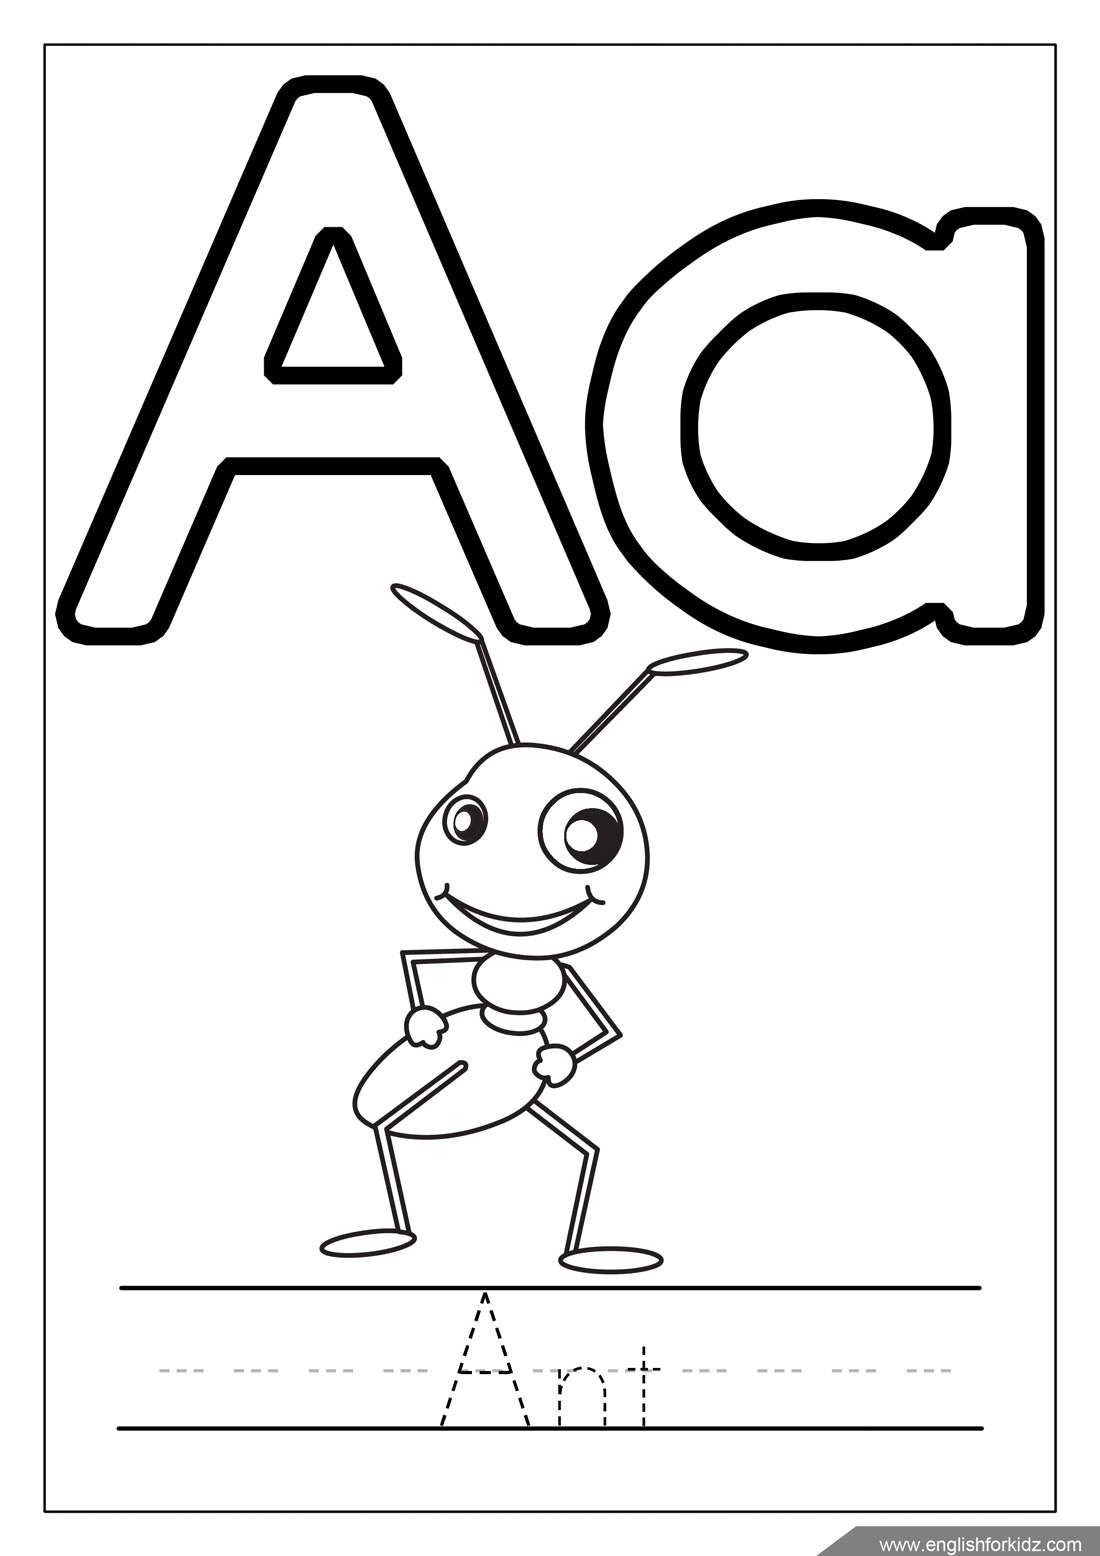 coloring worksheets abc free printable abc coloring pages for kids cool2bkids abc coloring worksheets